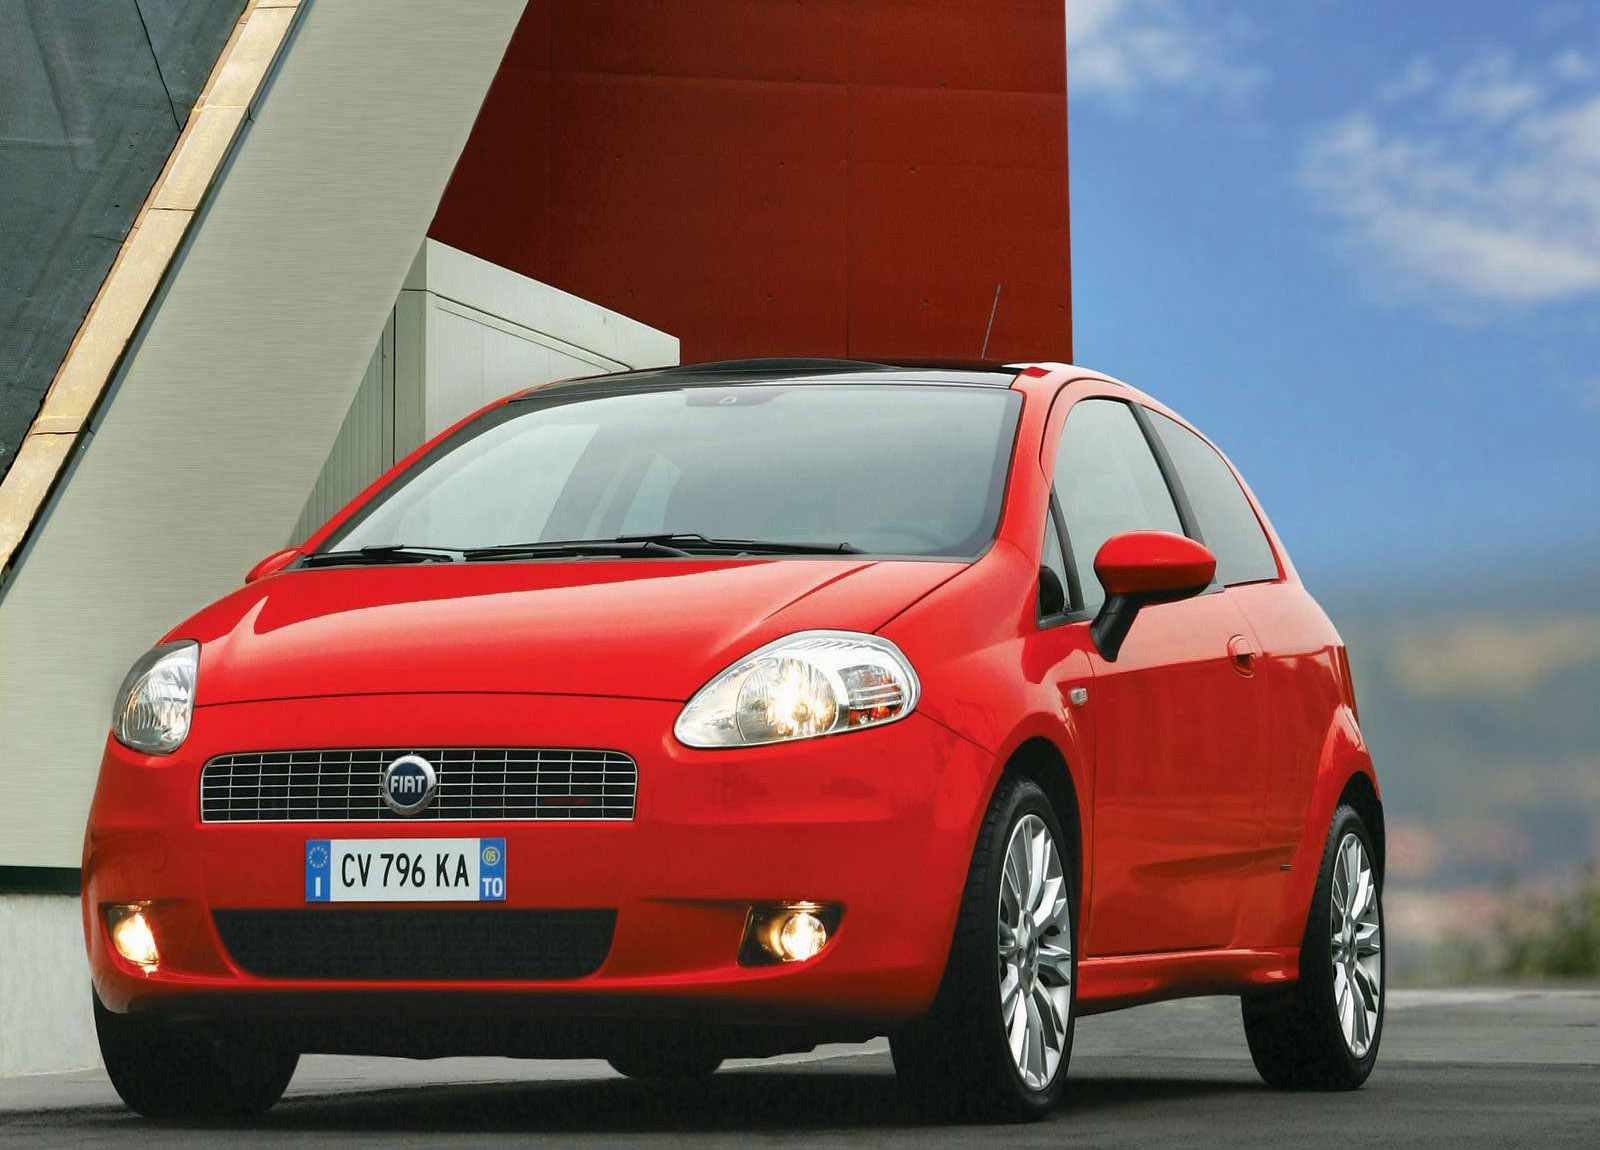 2005 fiat grande punto hd pictures. Black Bedroom Furniture Sets. Home Design Ideas